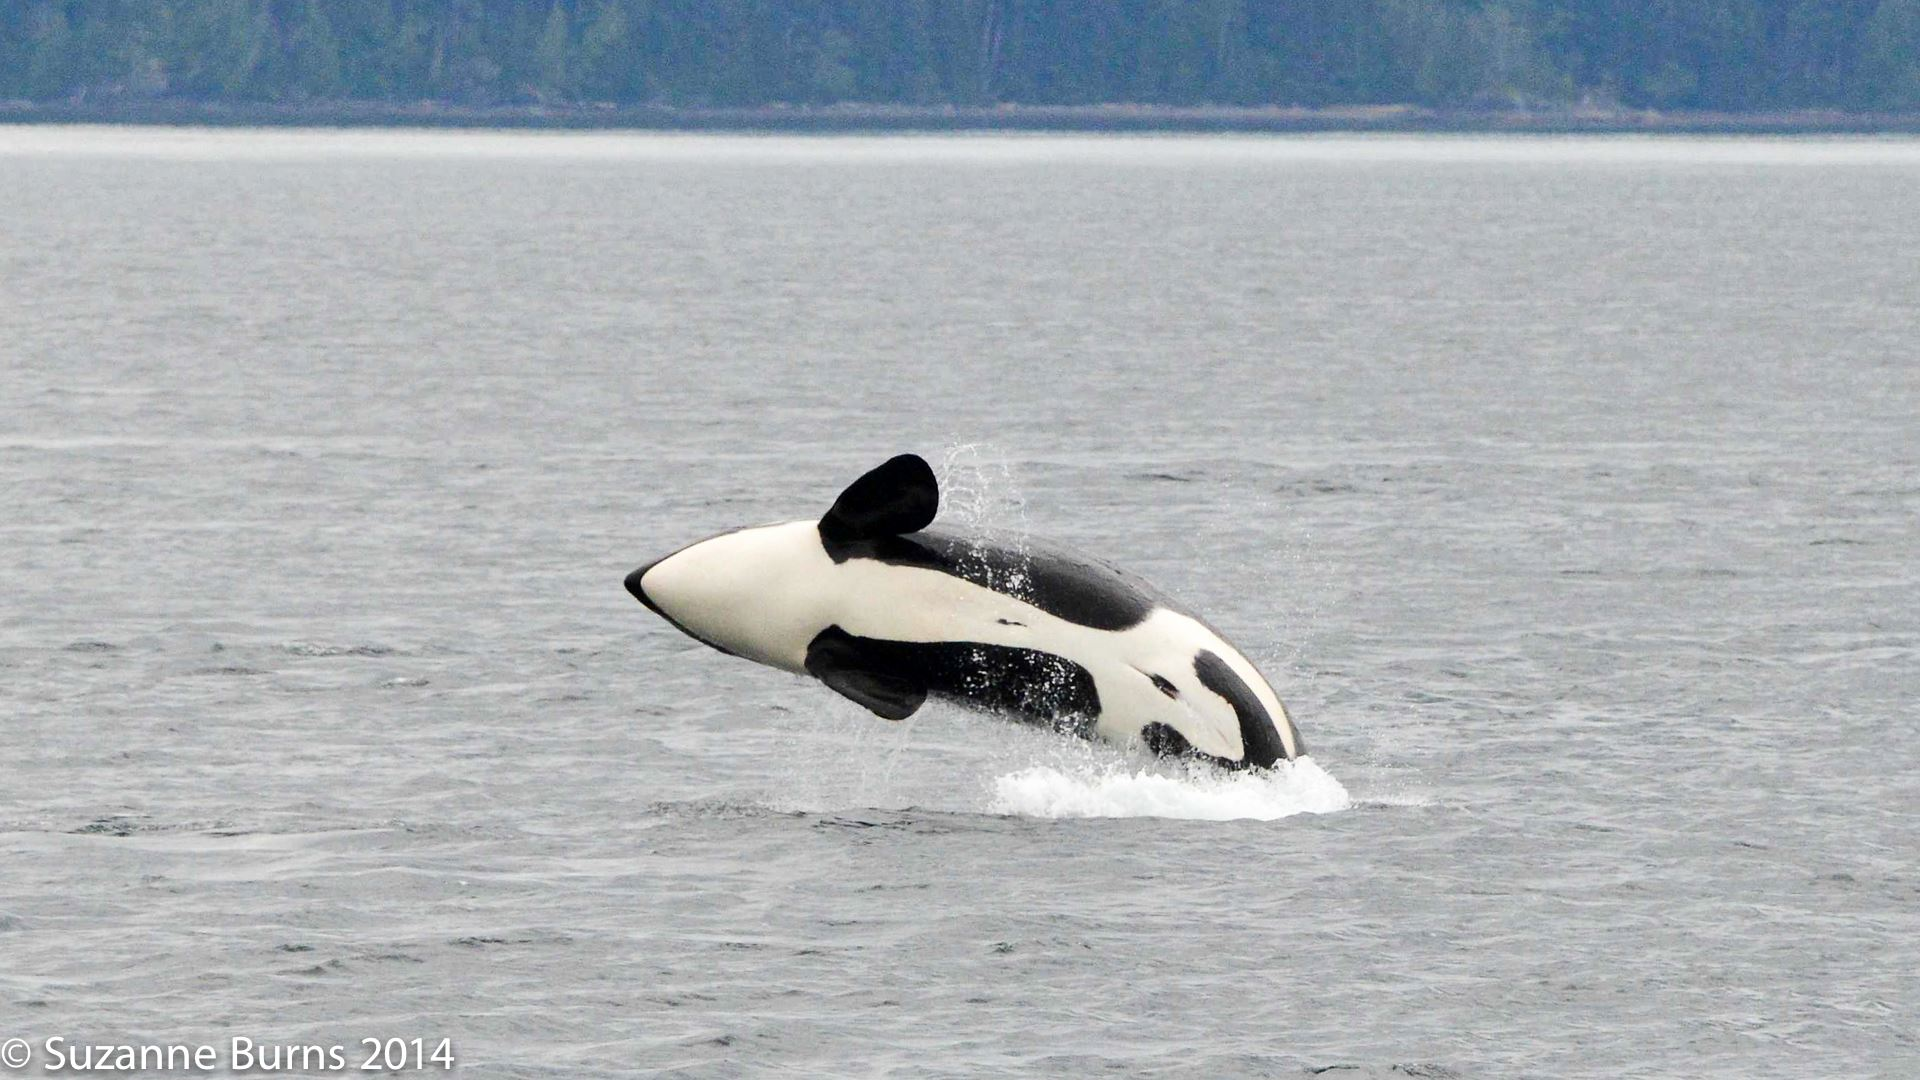 Baby orca breaching-Suzanne Burns